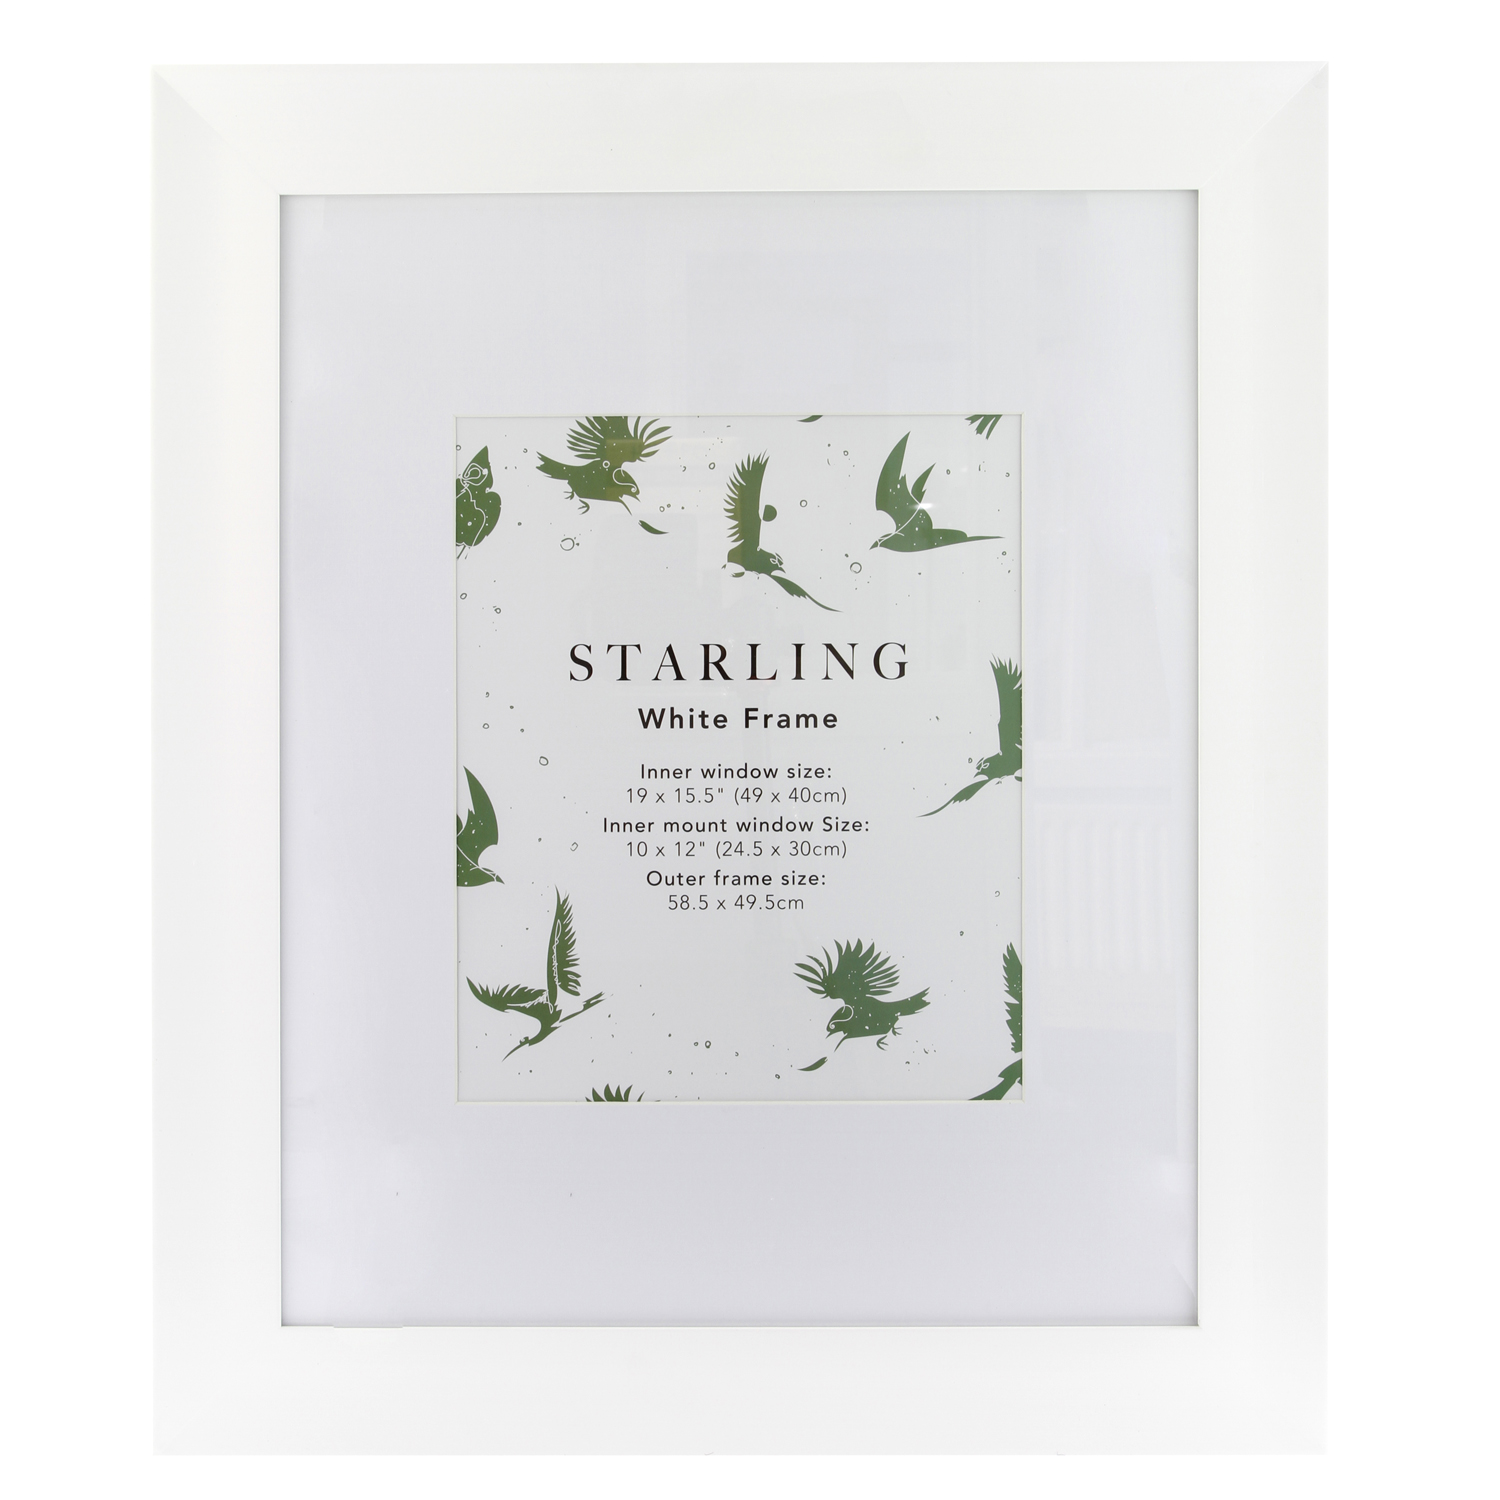 Starling White Frame 10 X 12 Home Store More